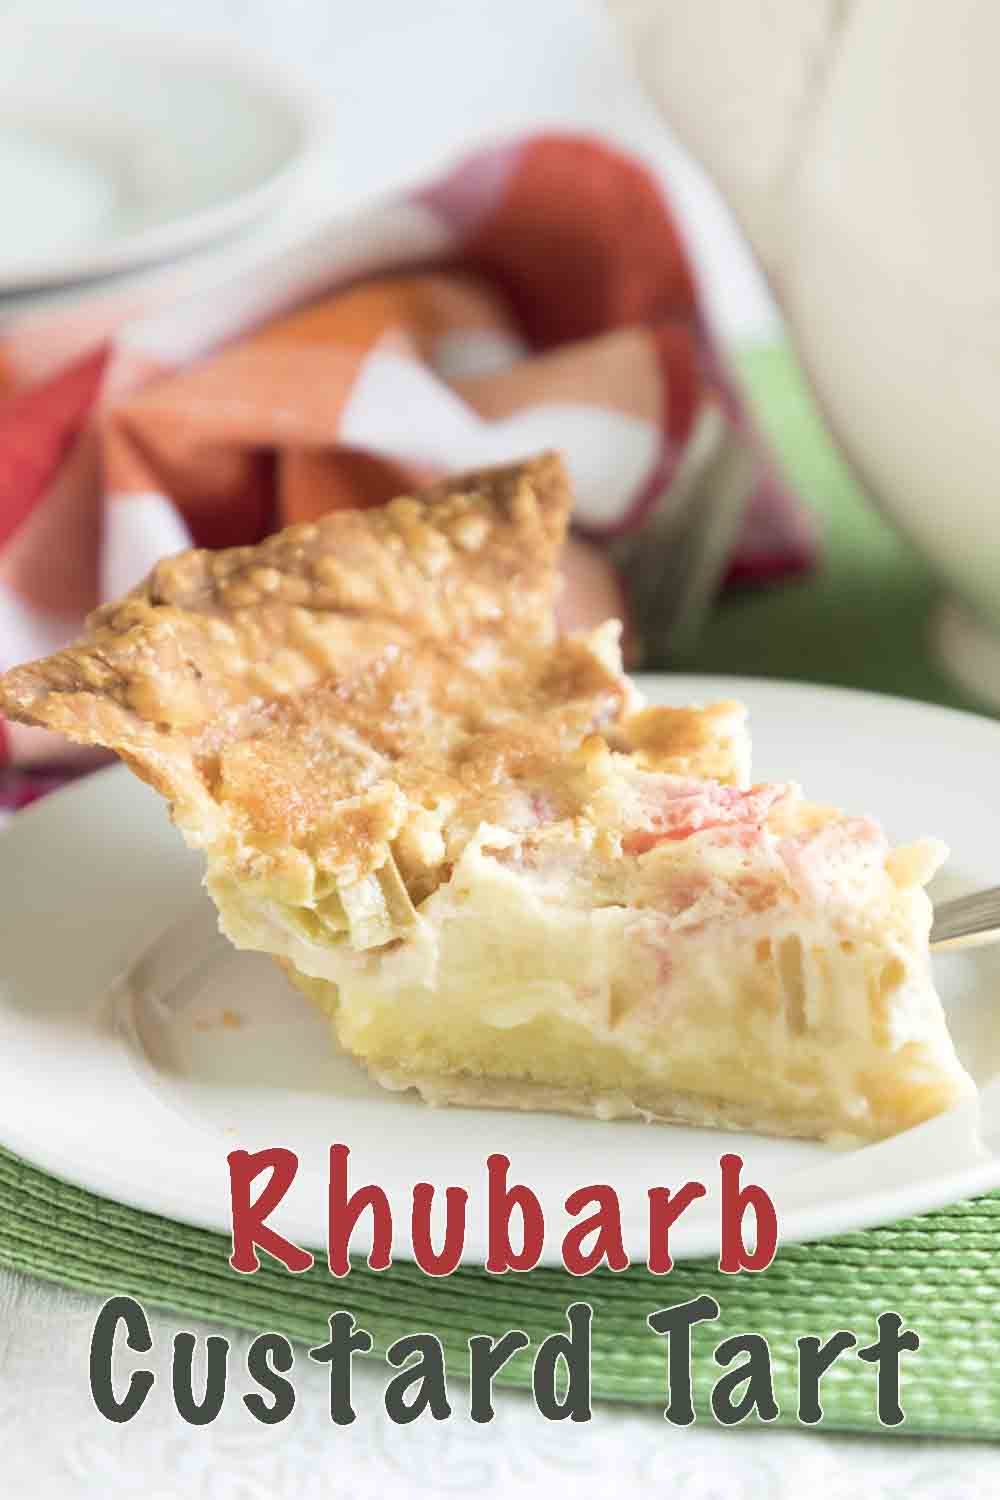 With a creamy sweet custard topped with tart rosy rhubarb, rhubarb custard pie is an easy dessert, snack or brunch recipe!